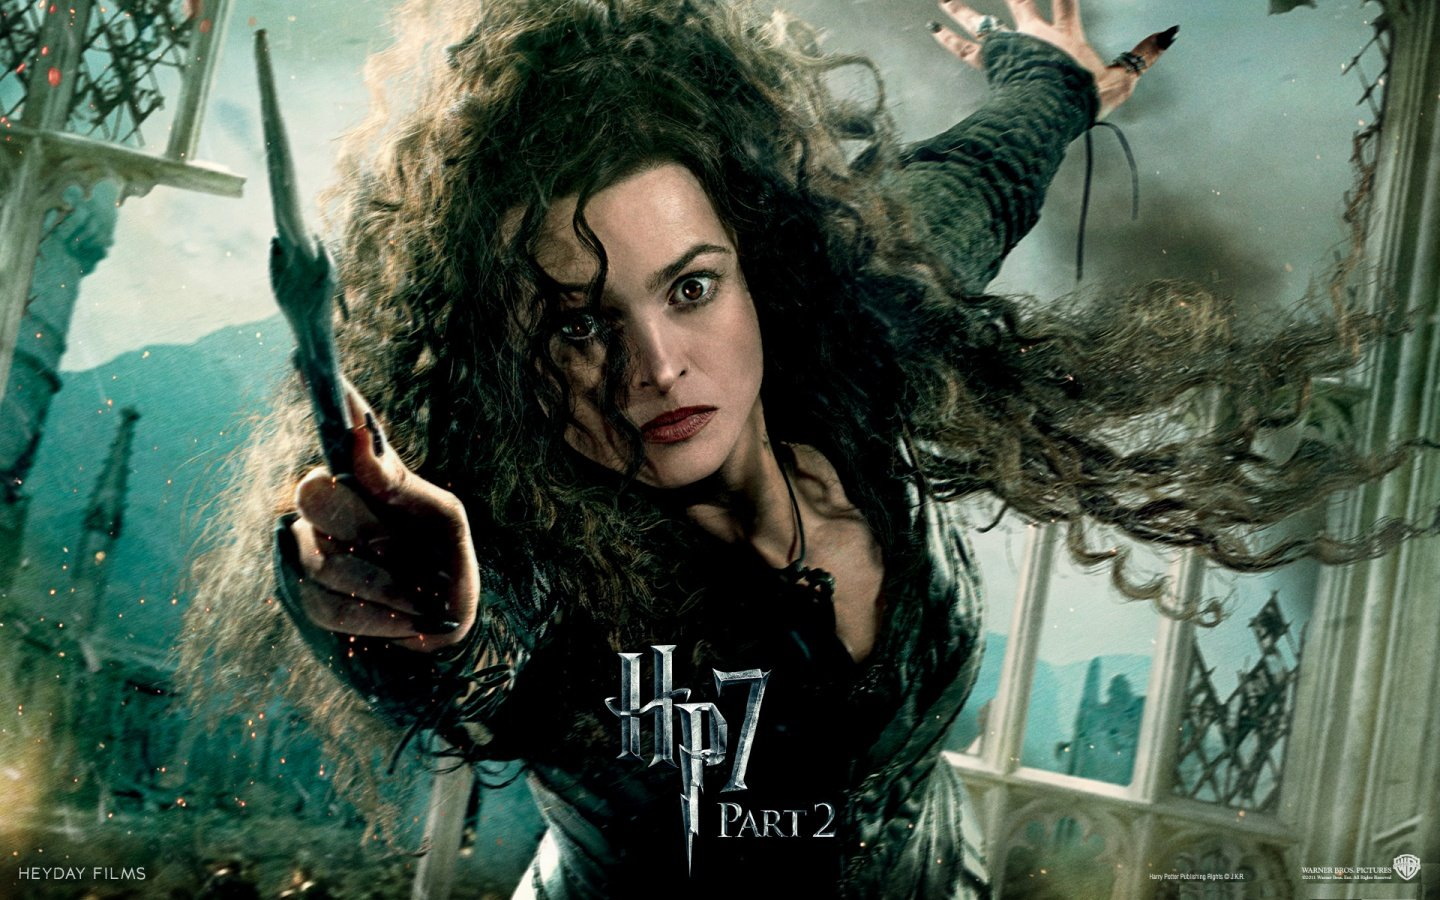 harry_potter_and_the_deathly_hallows_ending___bellatrix-wallpaper-1440x900.jpg